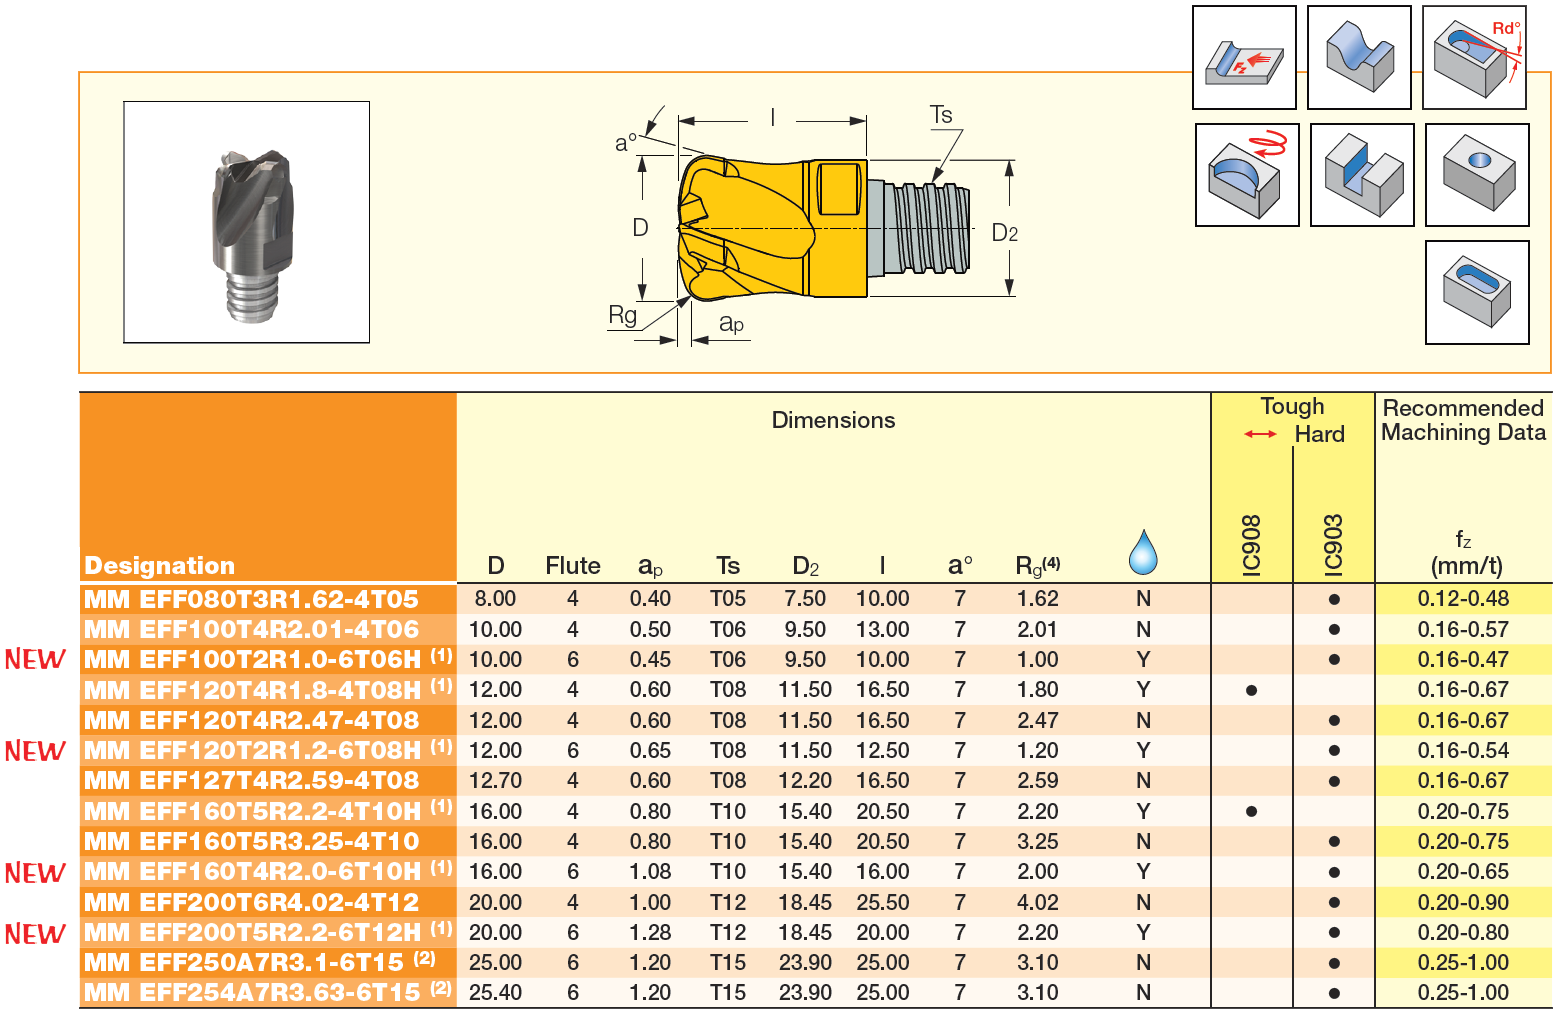 MULTI-MASTER_SOLID-FEED-MILL_Table